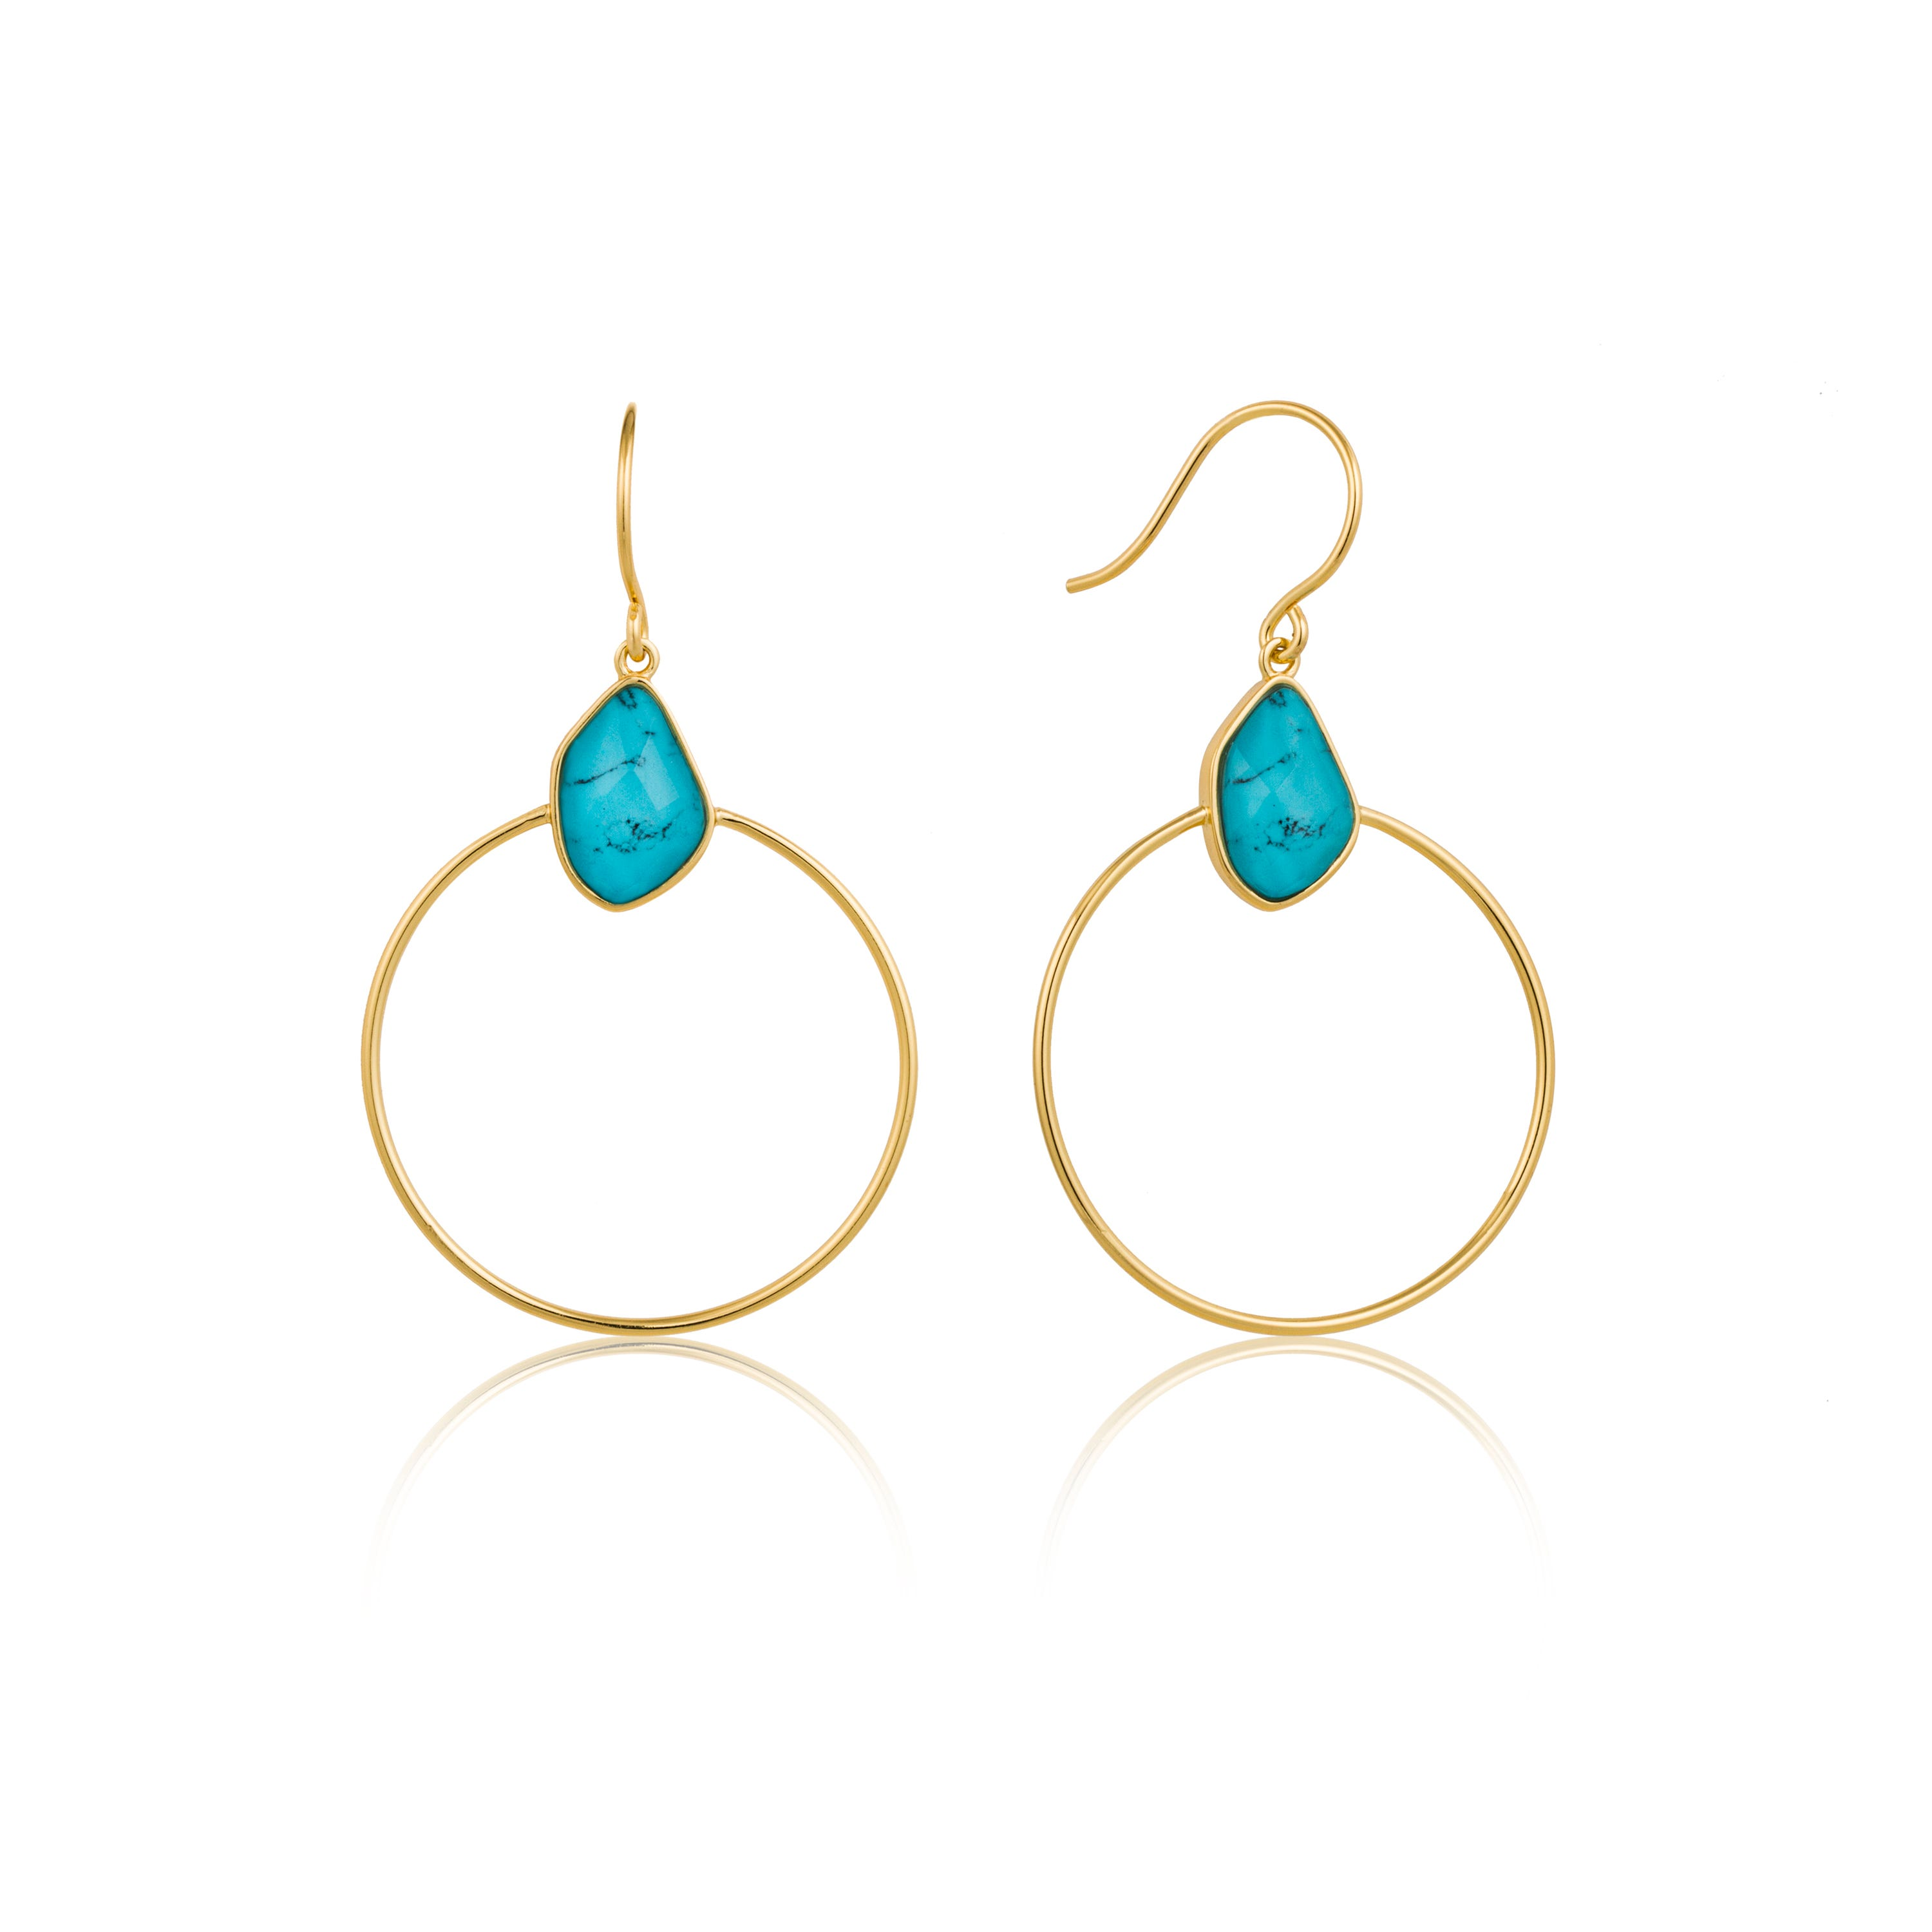 Turquoise Front Hoop Earrings in Sterling Silver/Gold Plated